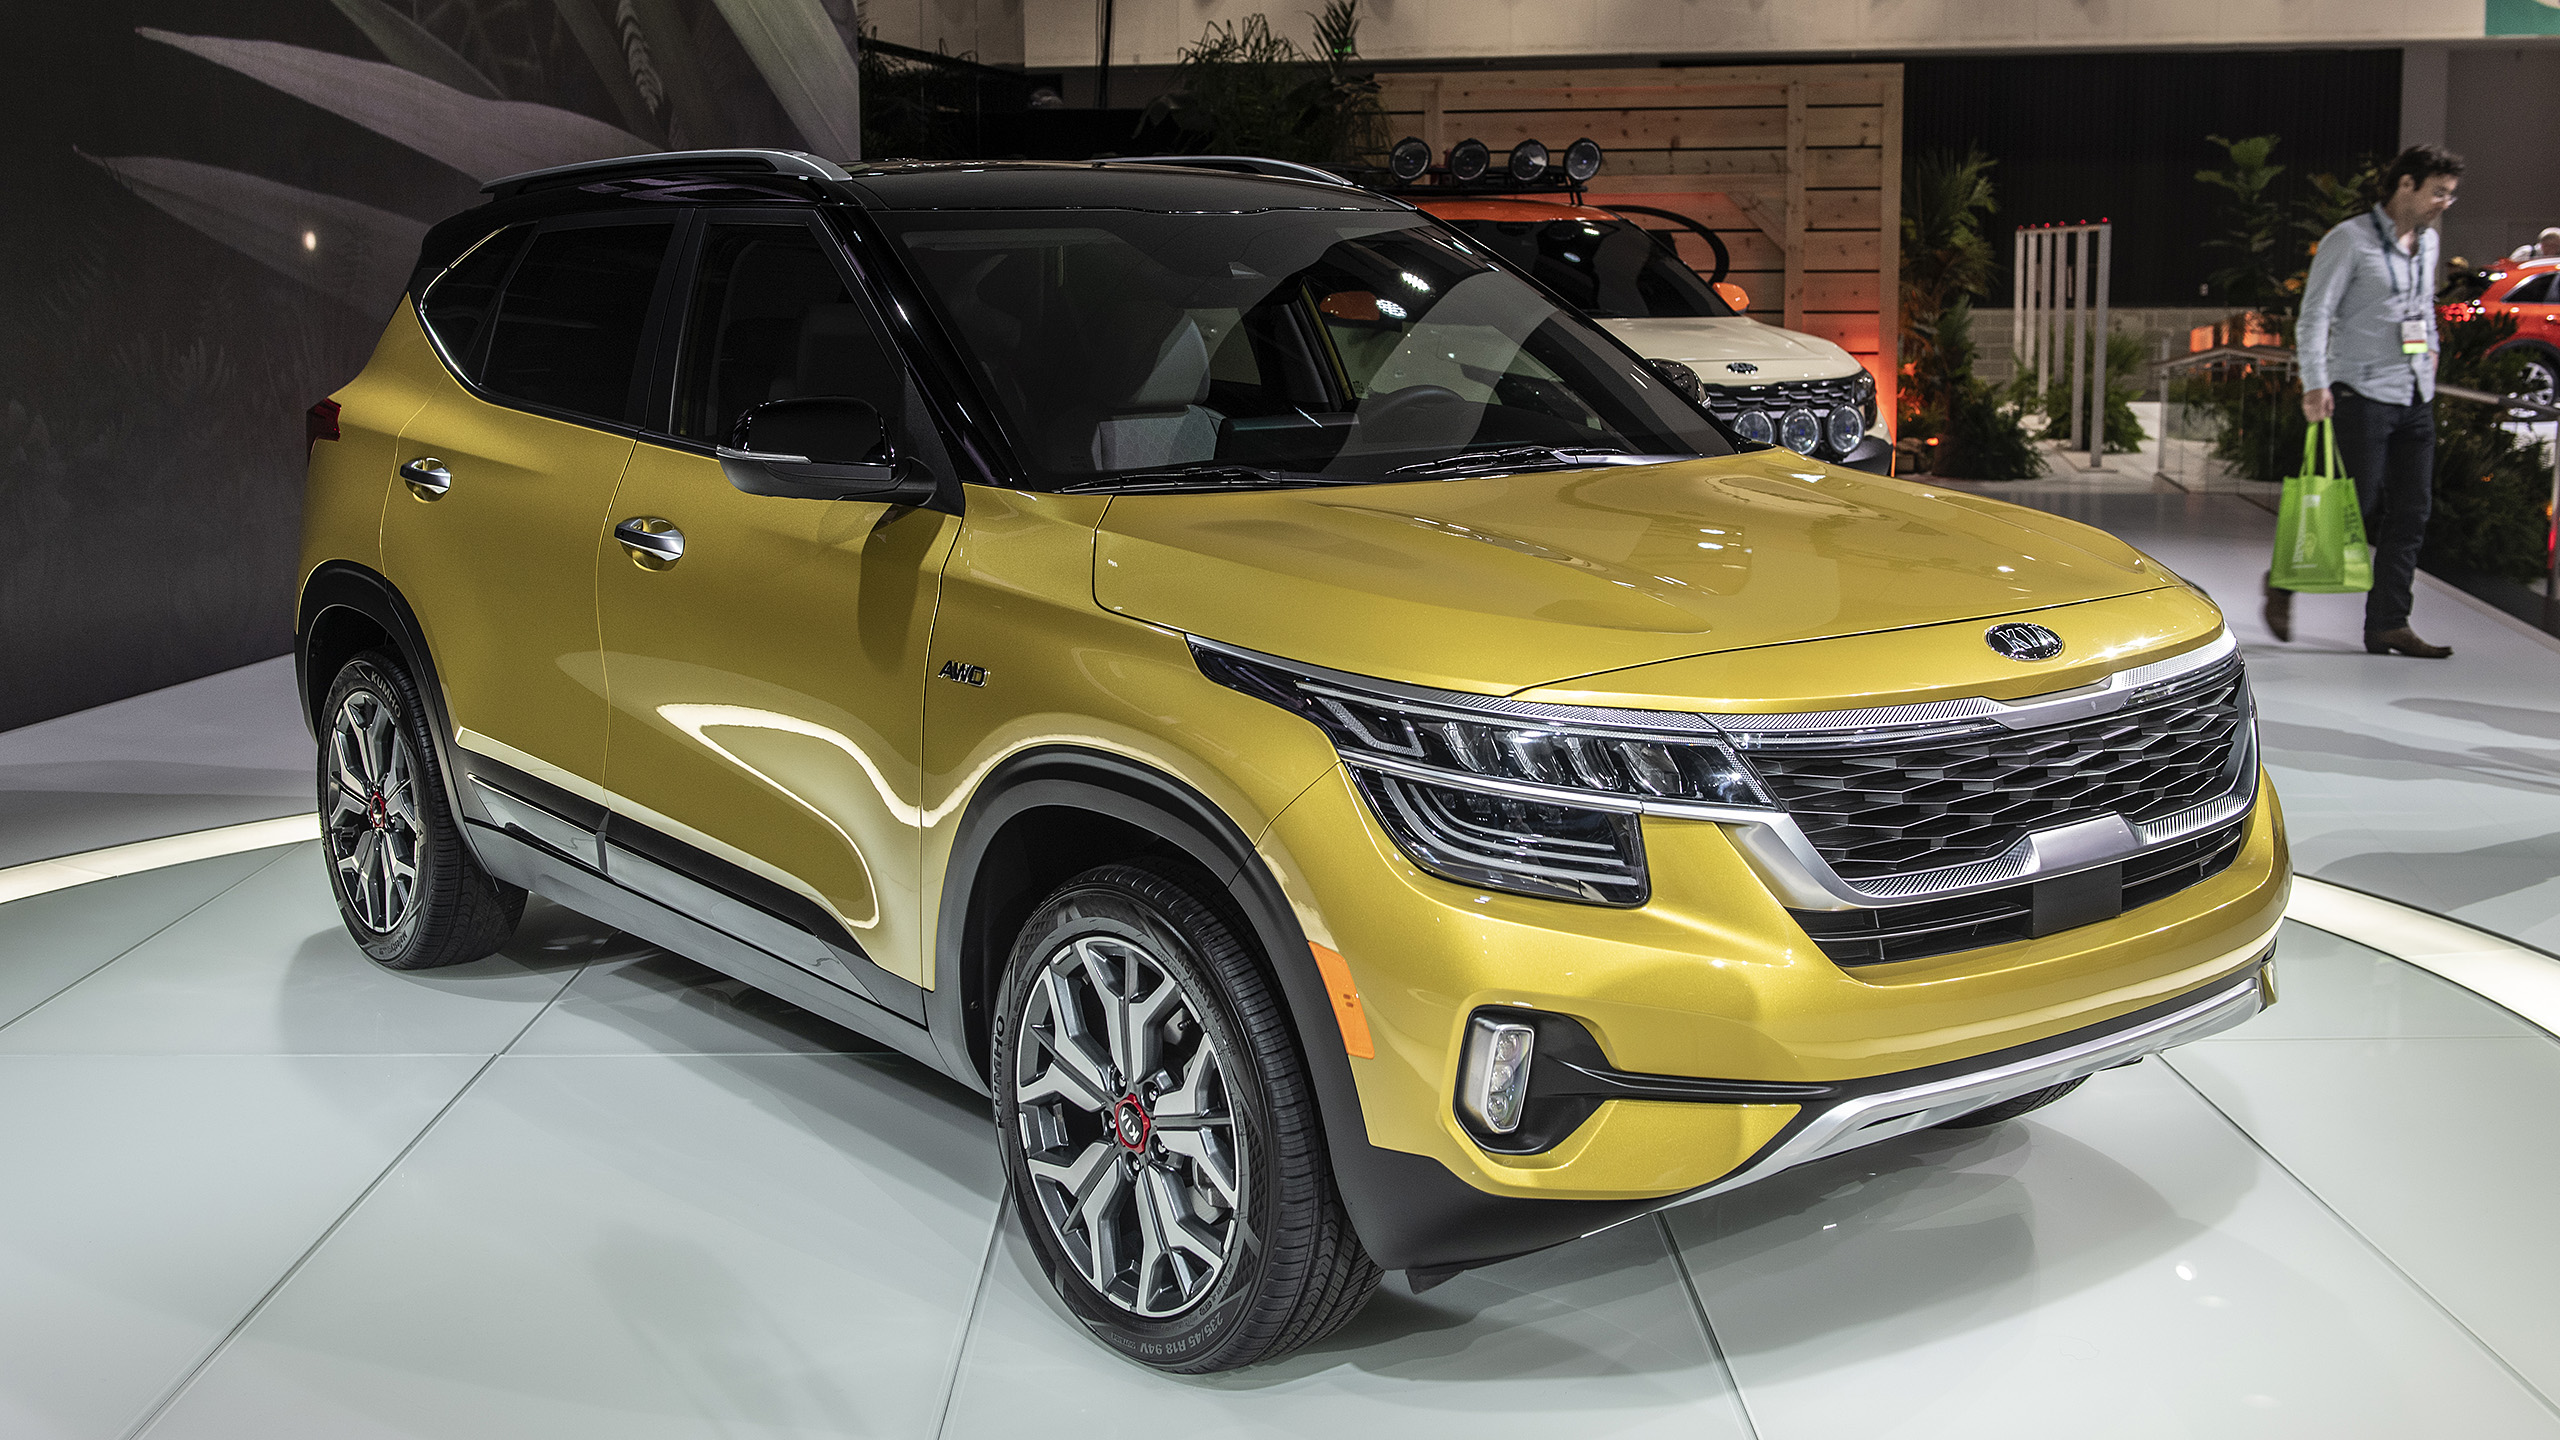 2021 kia seltos crossover unveiled for u s  at 2019 l a  auto show